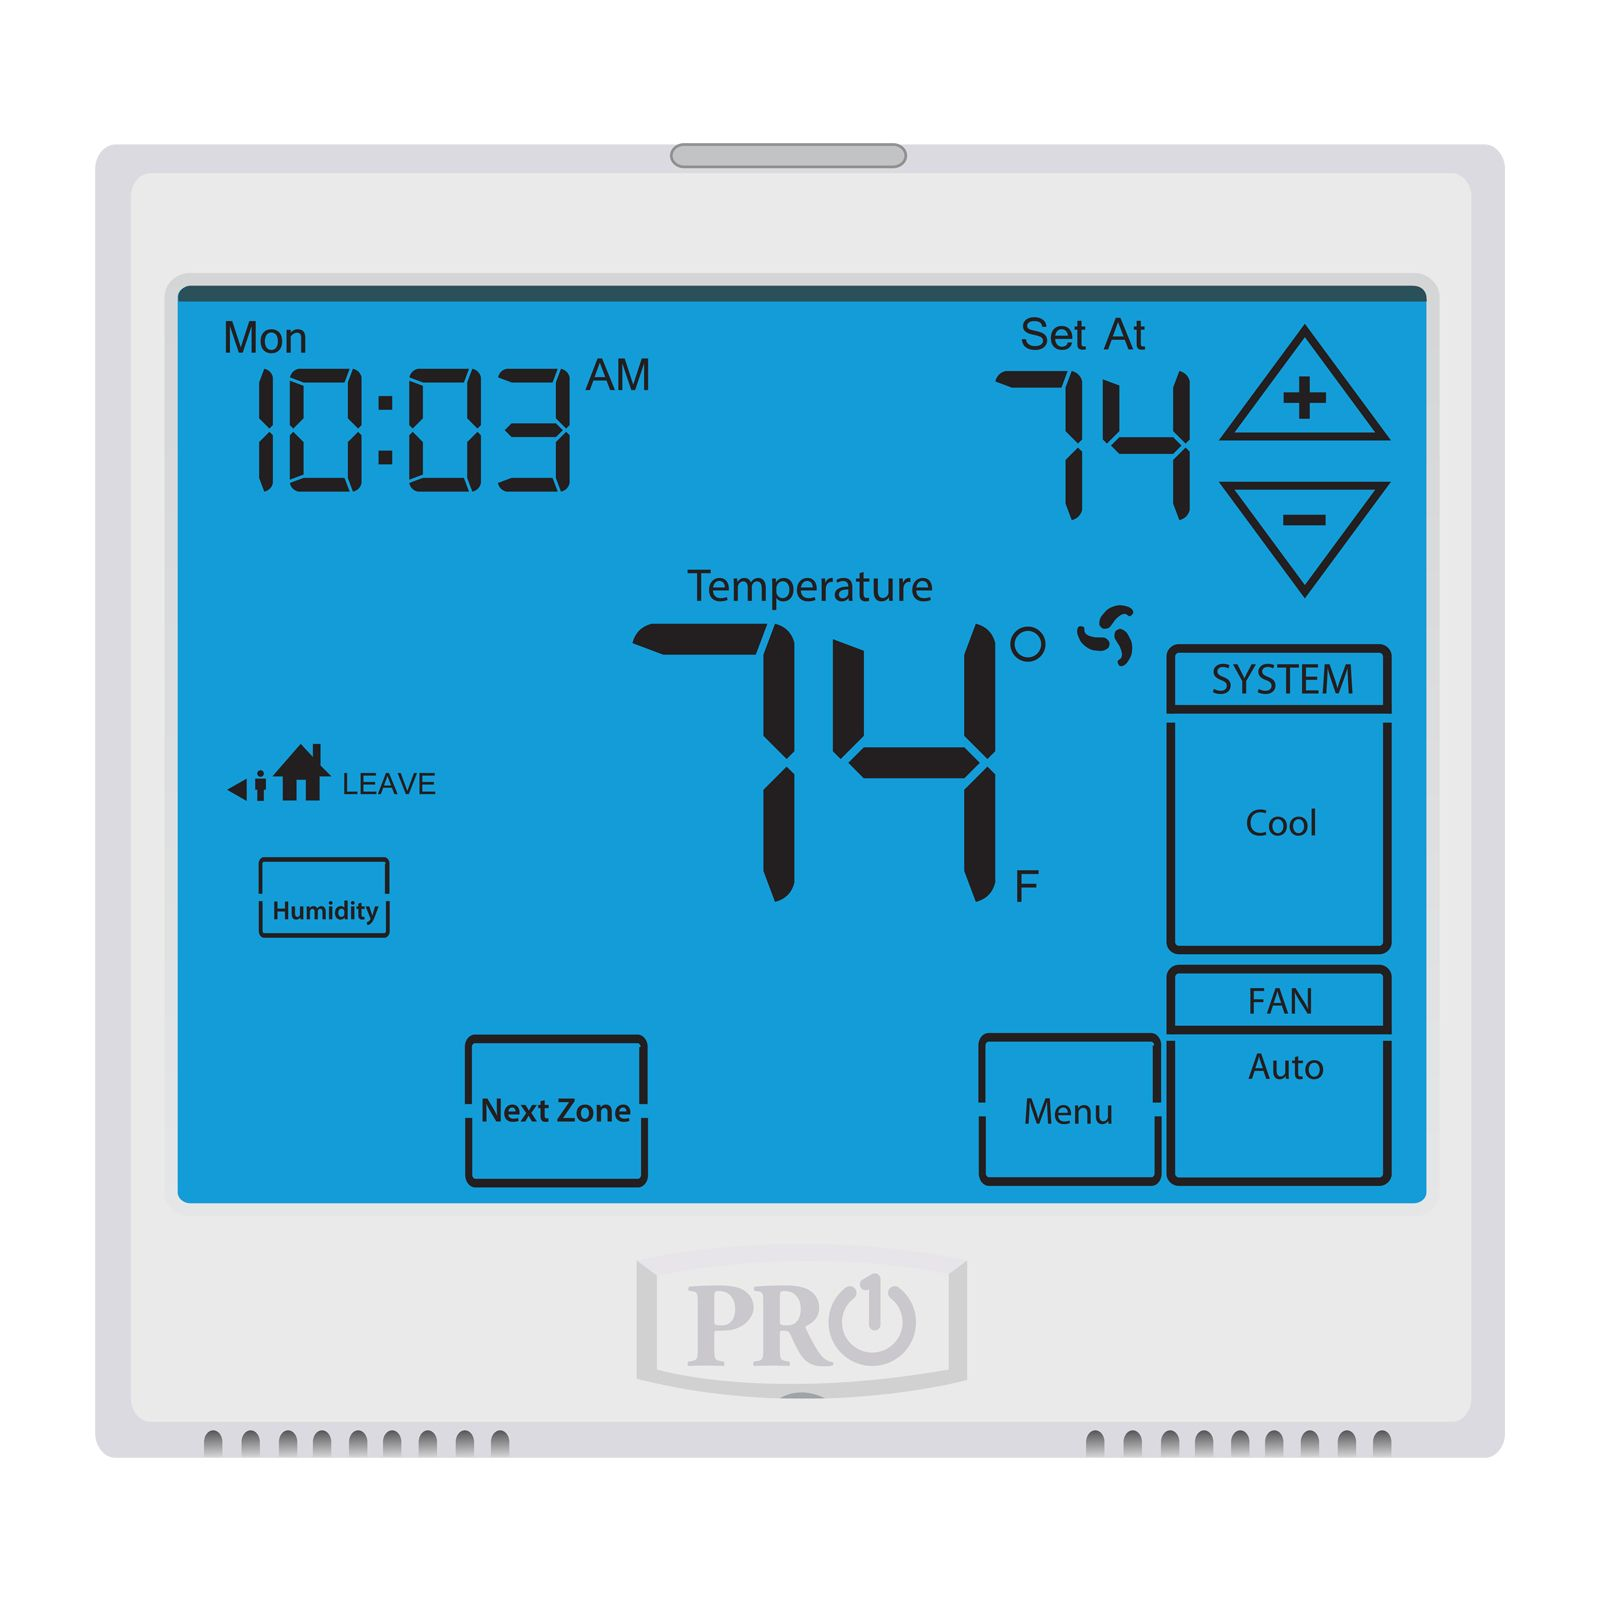 Pro1 T955WH - Wireless Touchscreen, 5+1+1 or 7 Day Or Non-Programmable Thermostat With Humidify Control, 3H/2C